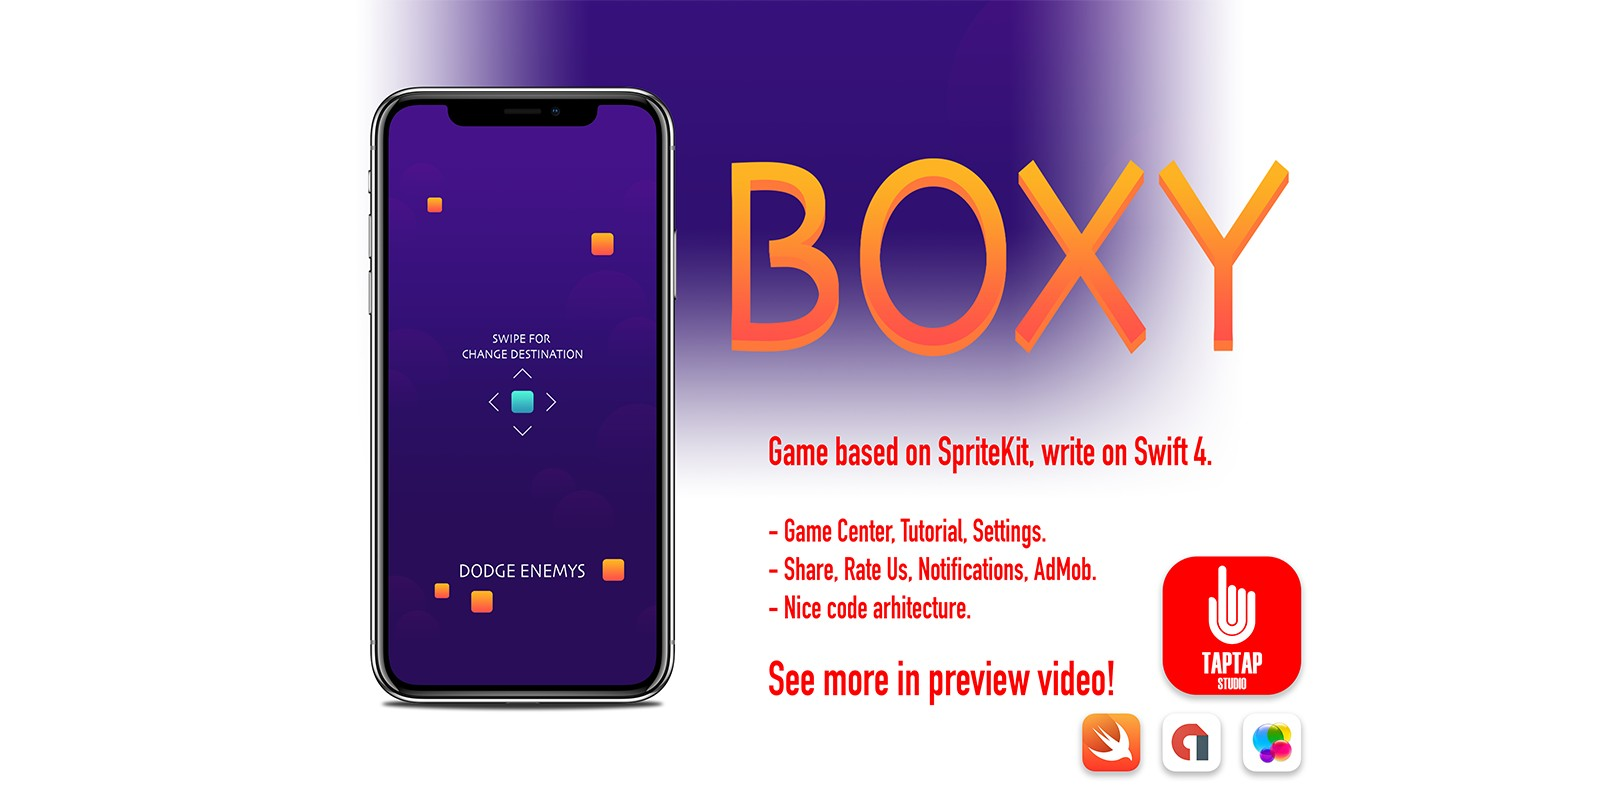 Boxy - iOS App Source Code